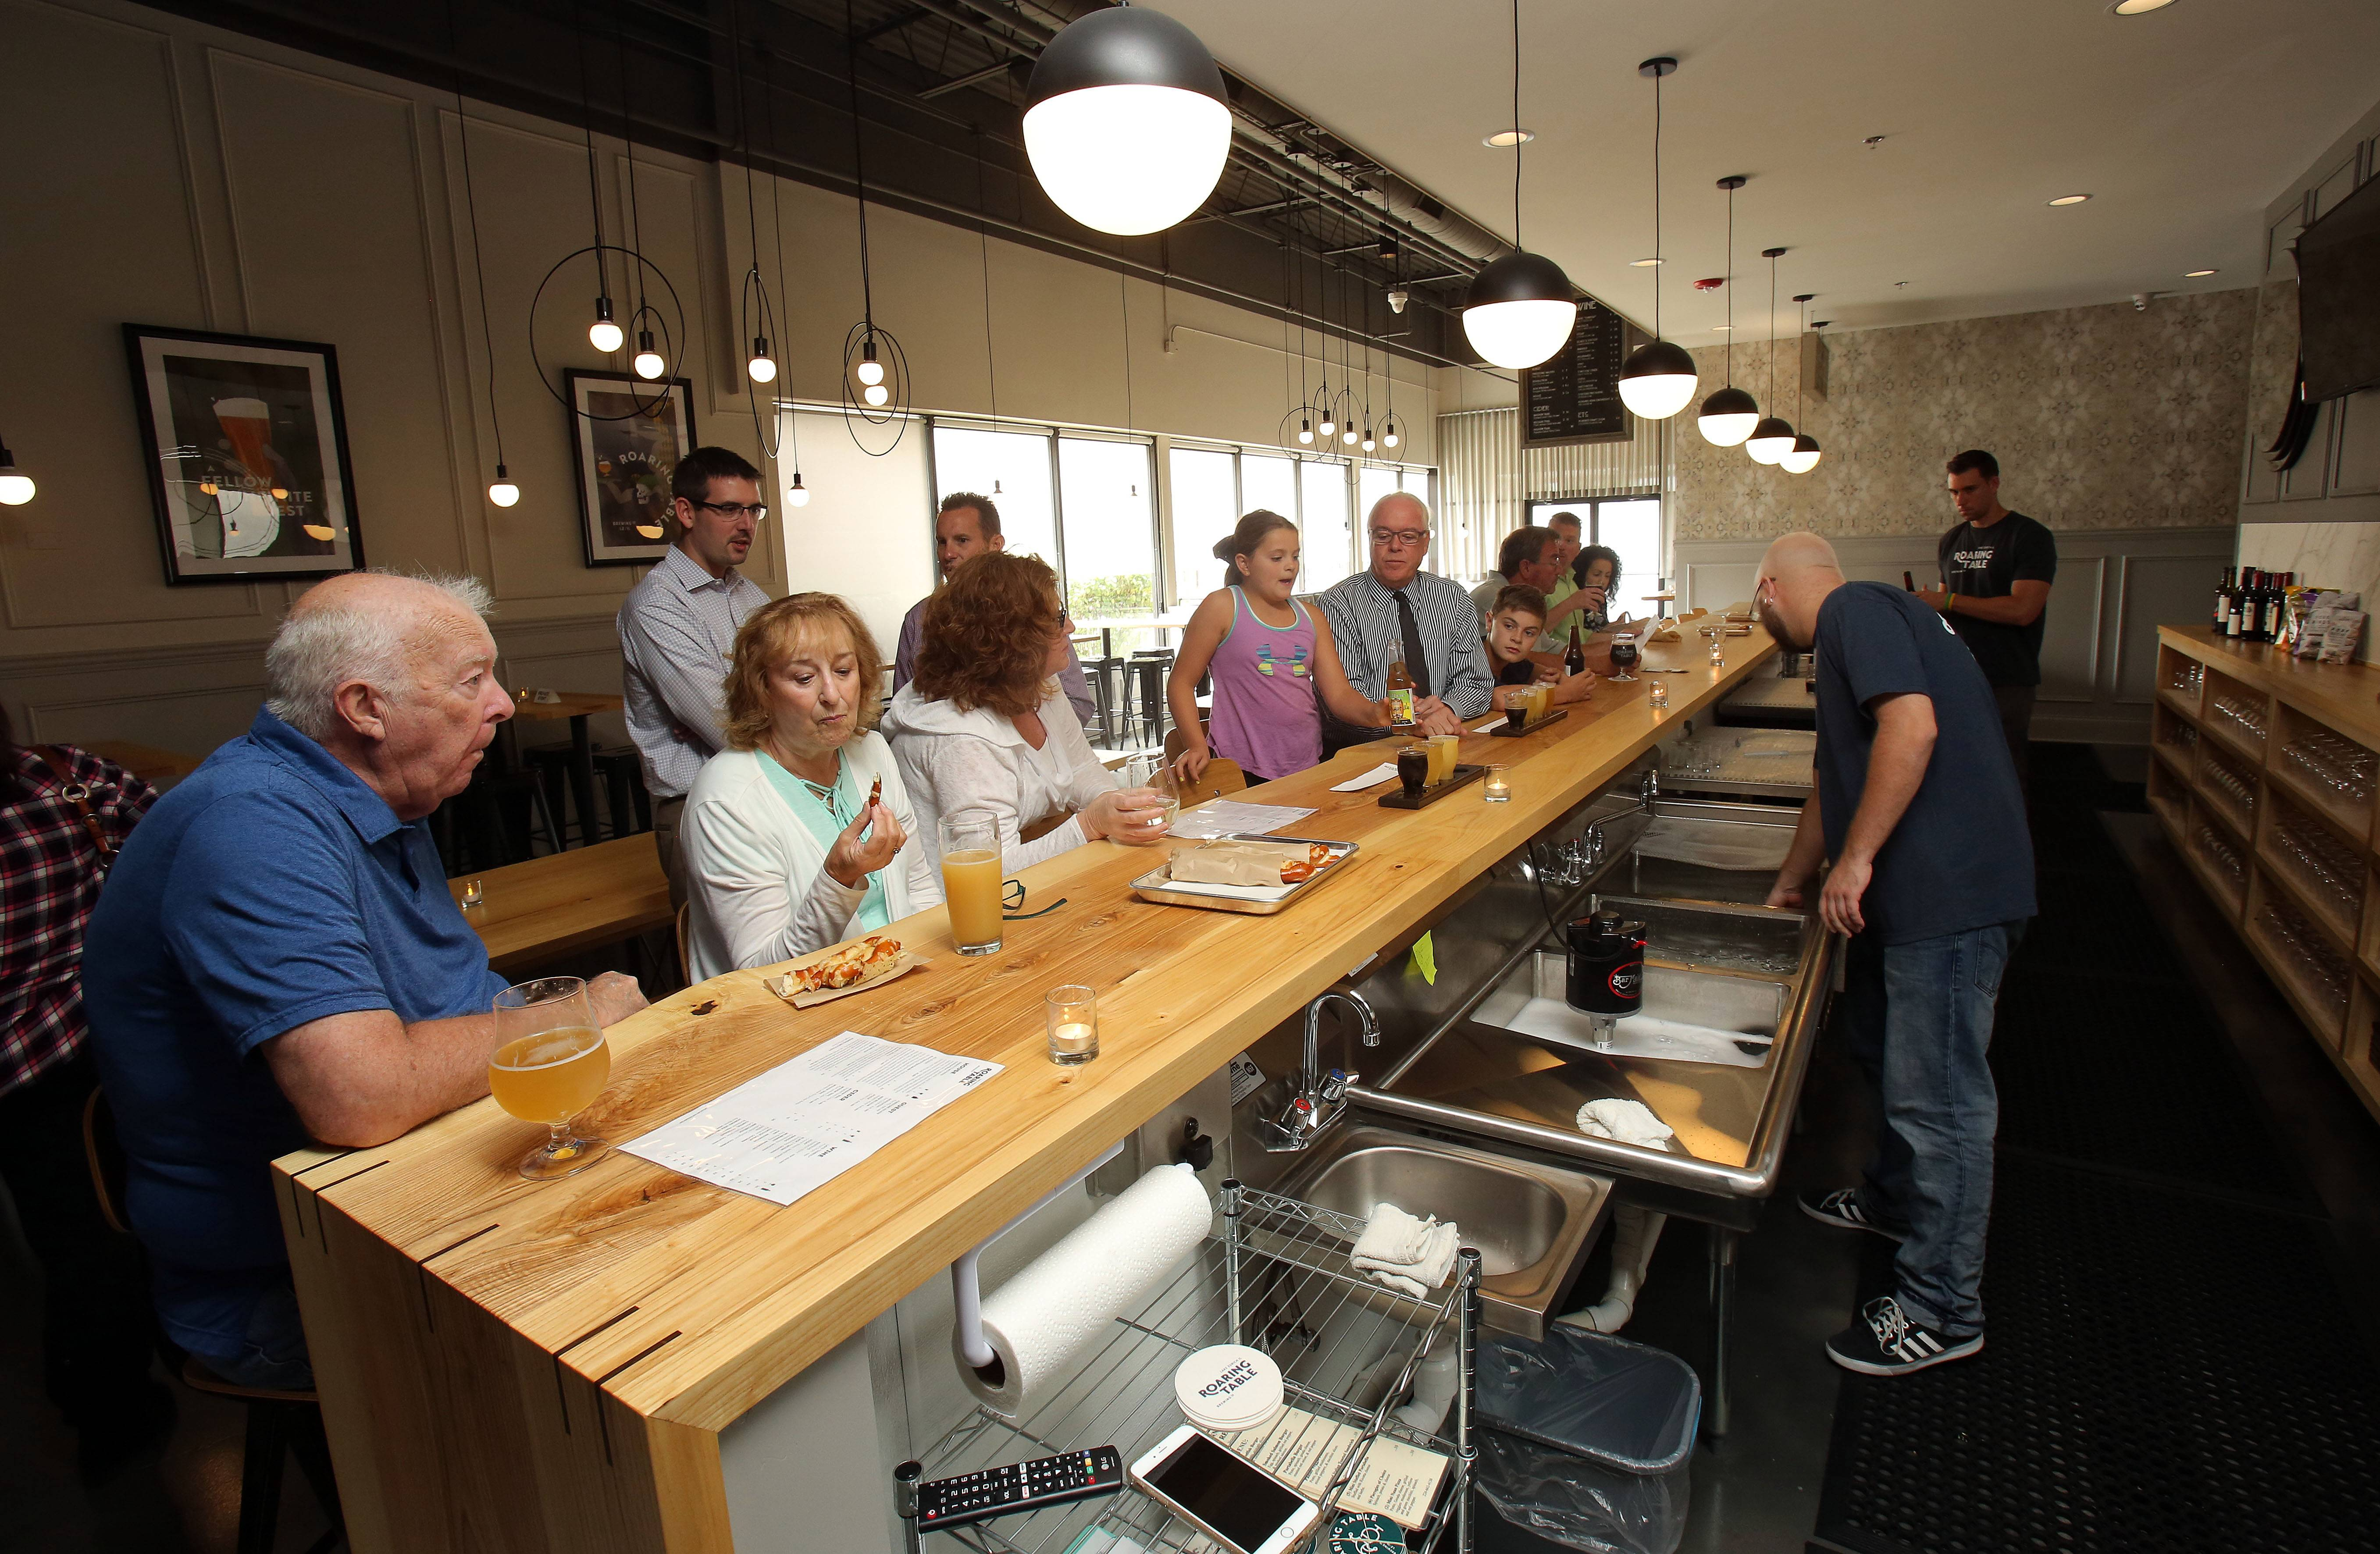 Roaring Table Brewery in Lake Zurich, which opens officially Friday, had a small ribbon-cutting event on Thursday.